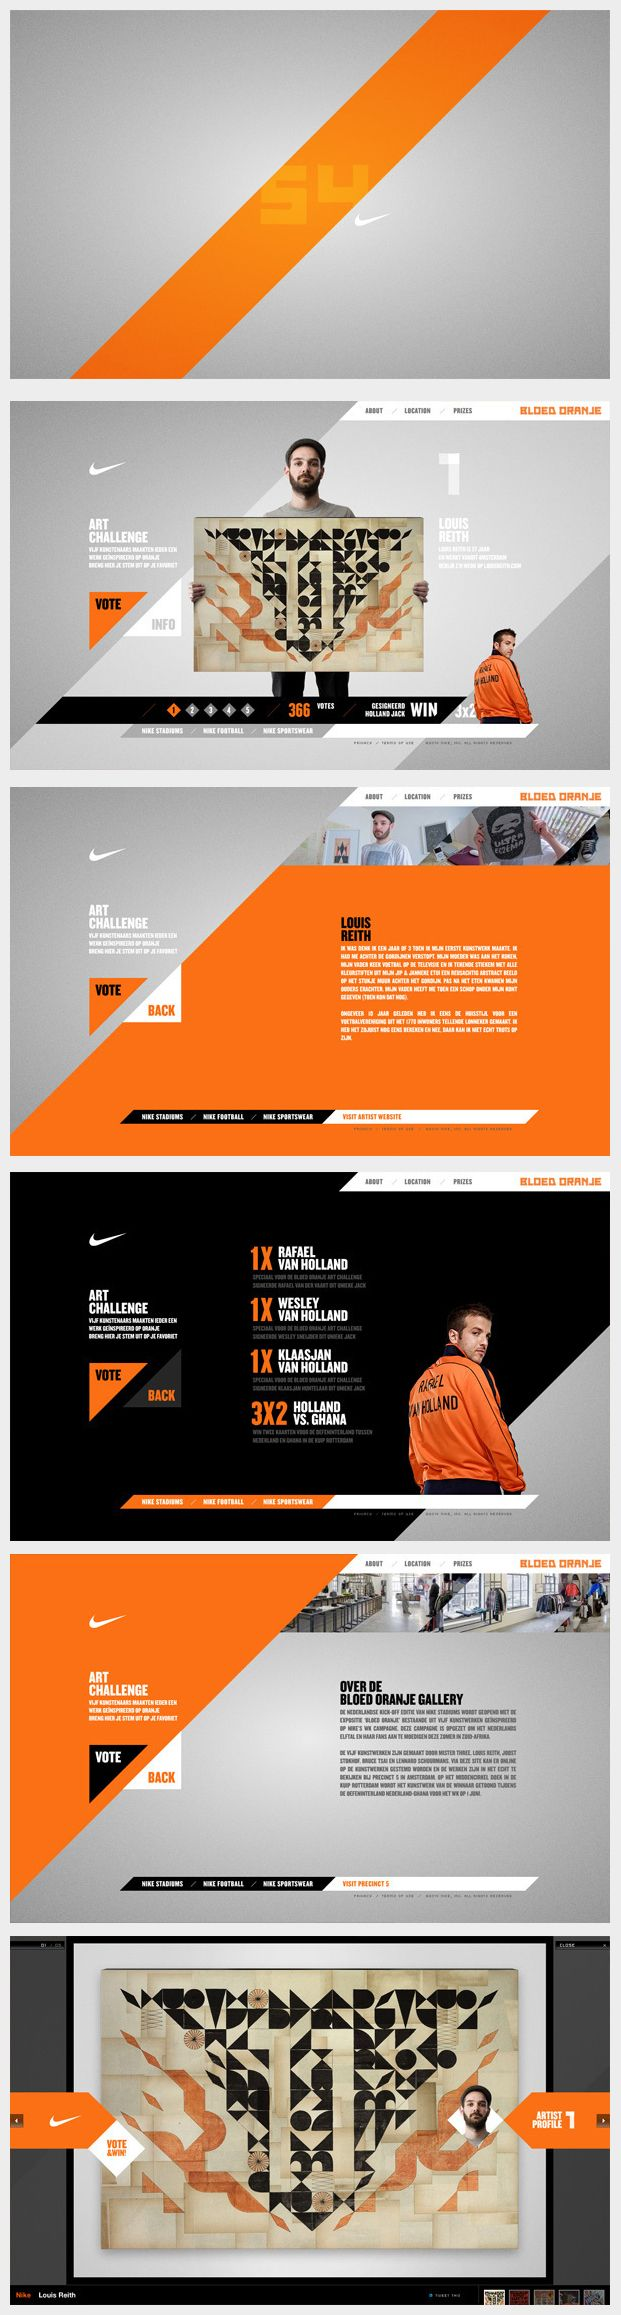 Nike Art Challange | #webdesign #it #web #design #layout #userinterface #website #webdesign < repinned by www.BlickeDeeler.de | Take a look at www.WebsiteDesign-Hamburg.de